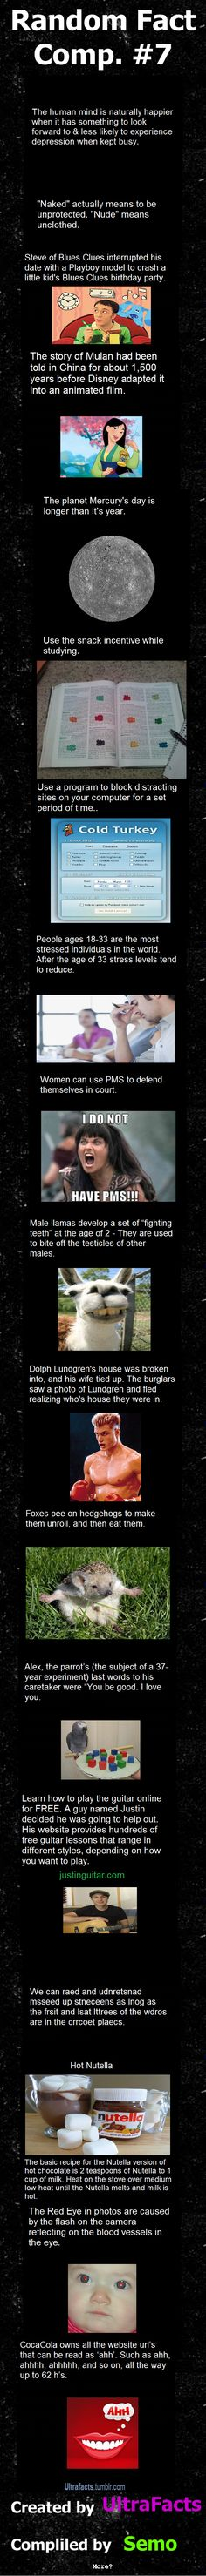 Random Fact Comp. 7  // funny pictures - funny photos - funny images - funny pics - funny quotes - #lol #humor #funnypictures